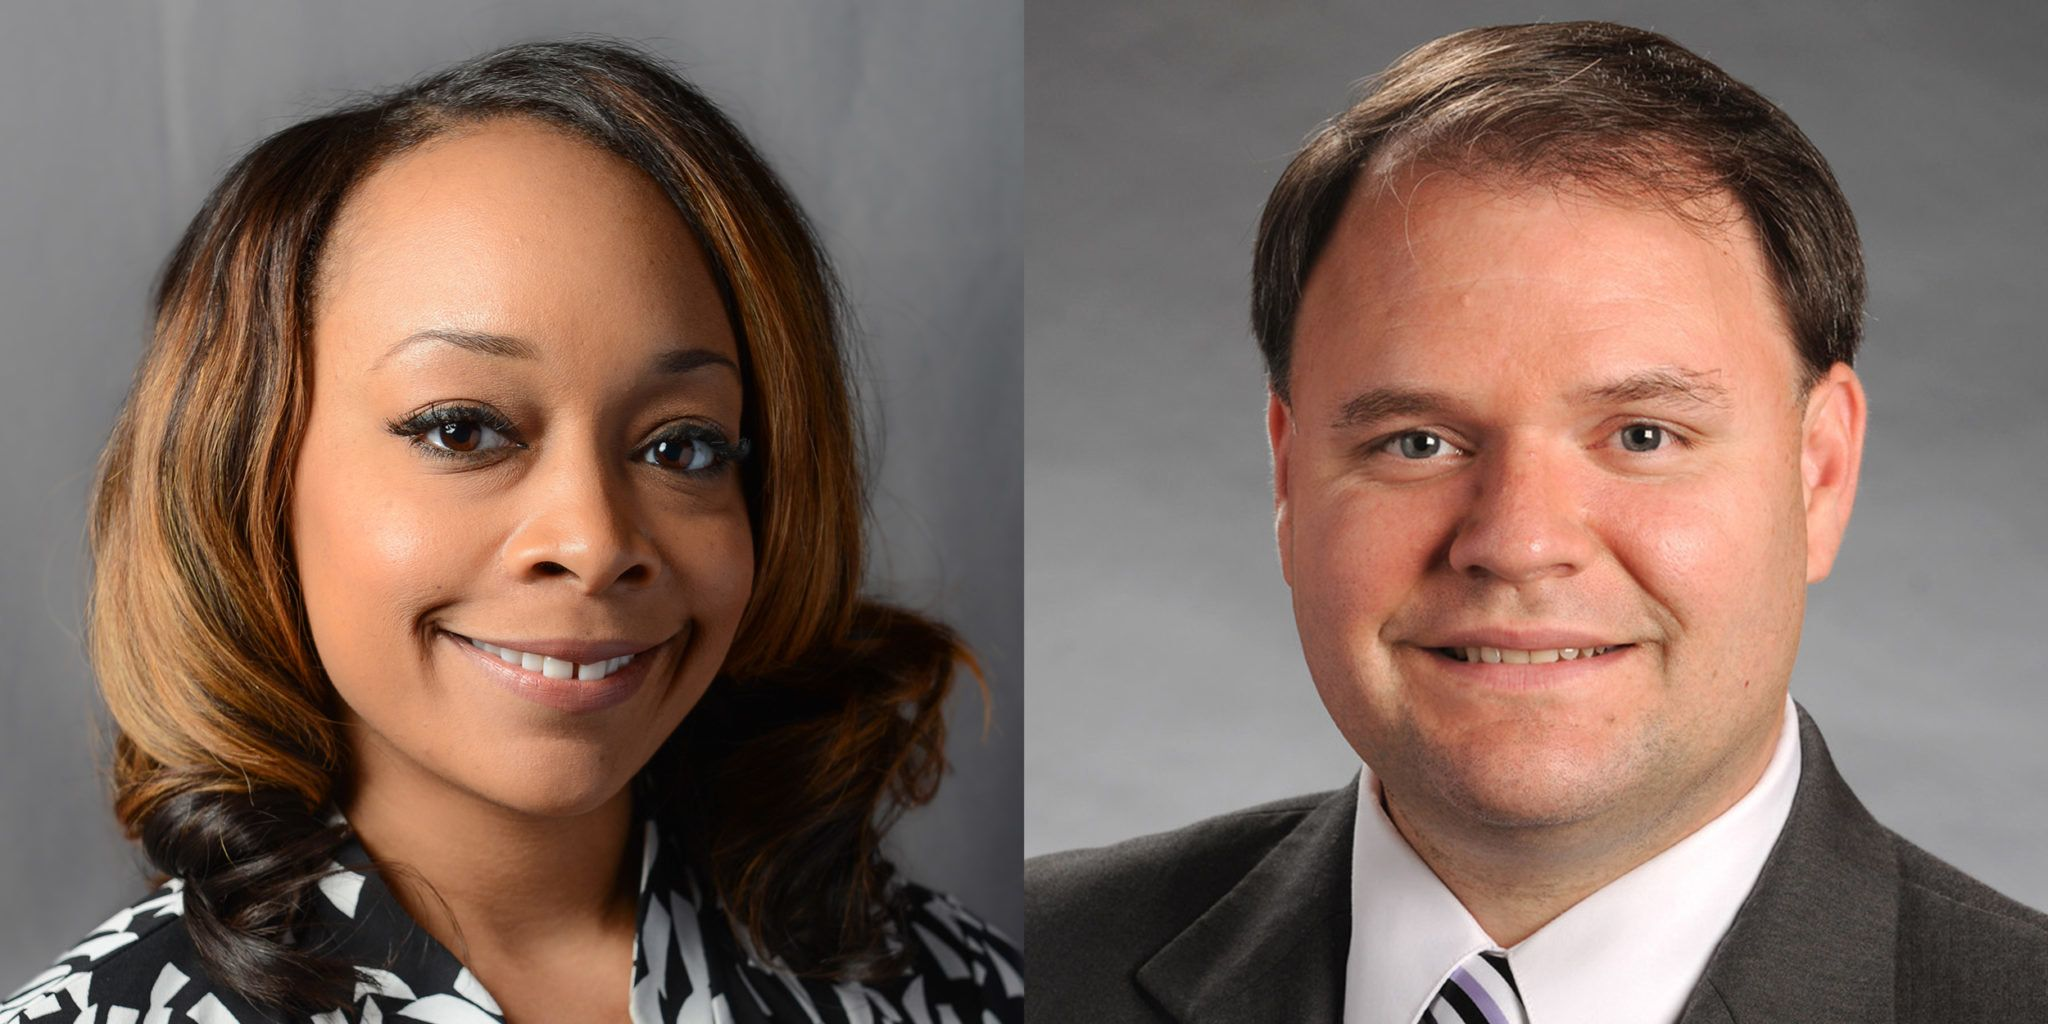 Images of former Georgia state Rep. LaDawn Jones and state Rep. Jason Spencer.